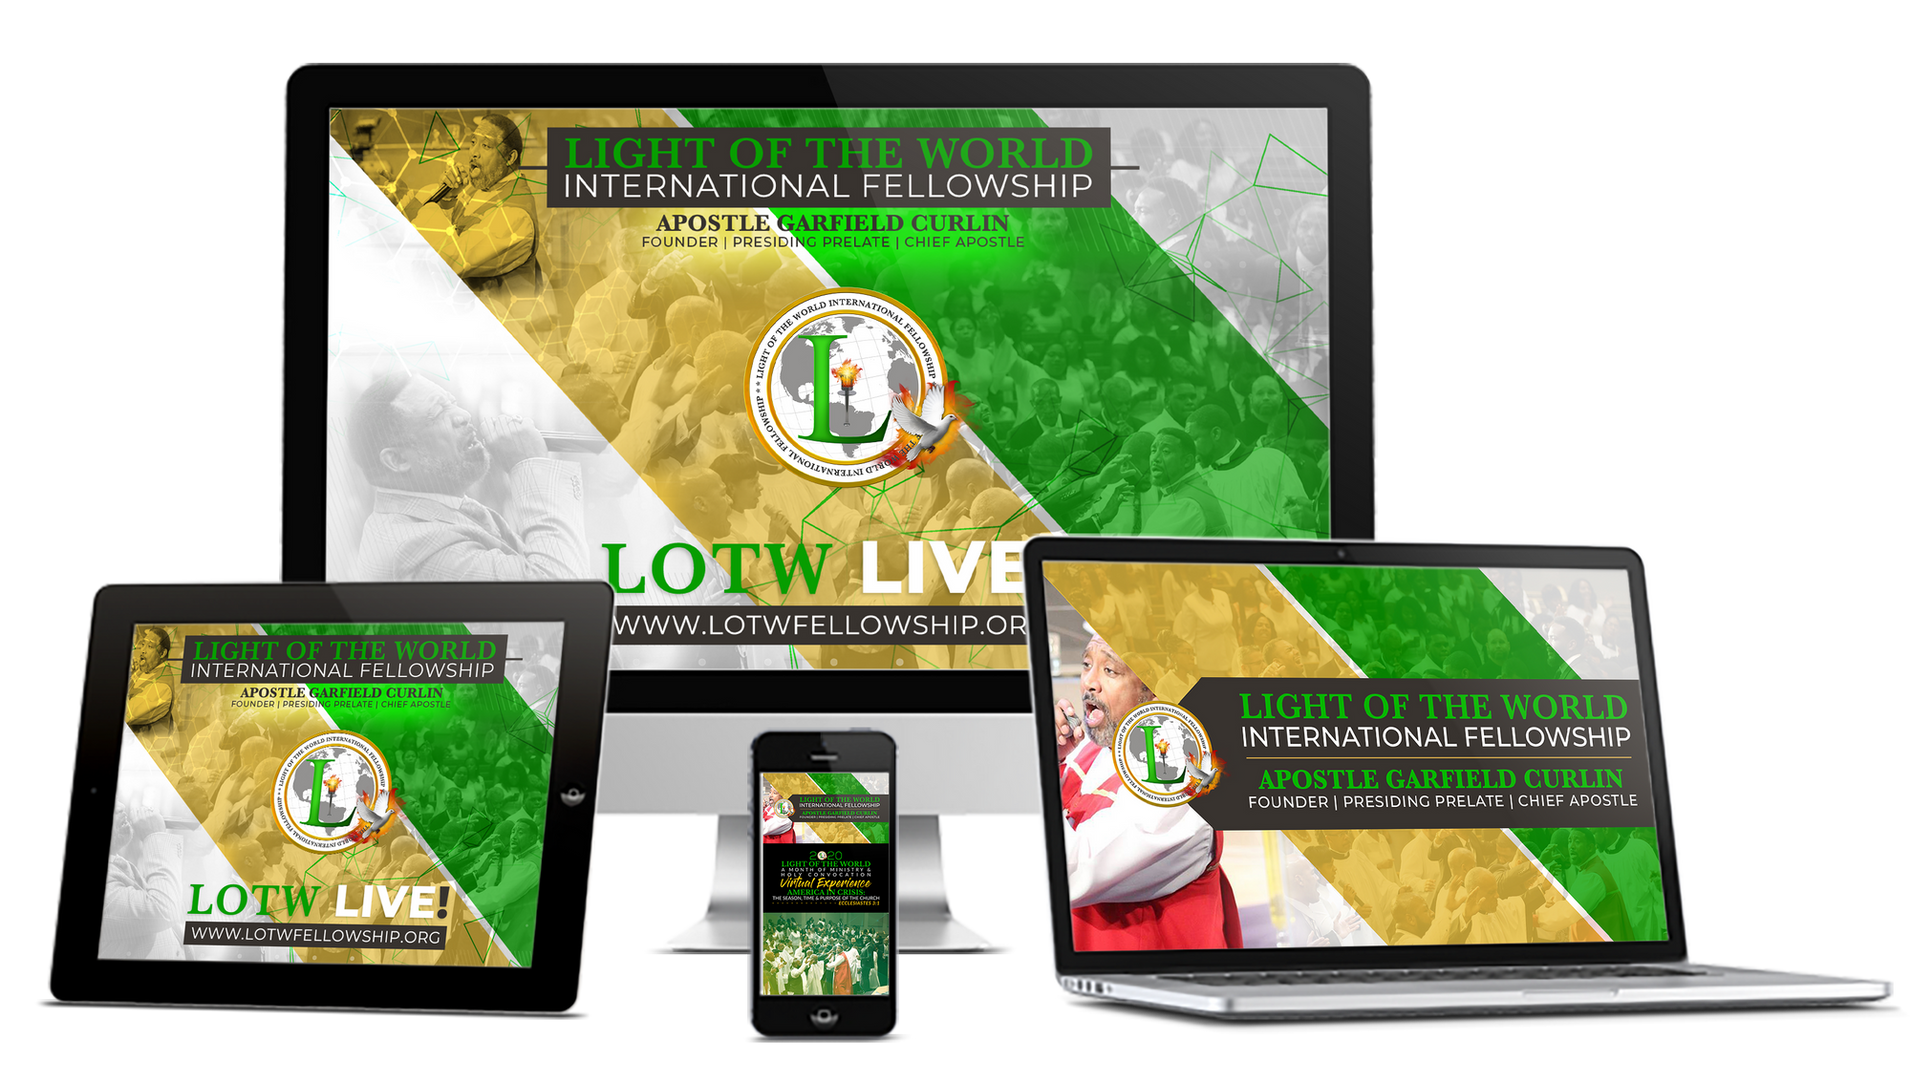 lotw-website-mockup-4-devices.png